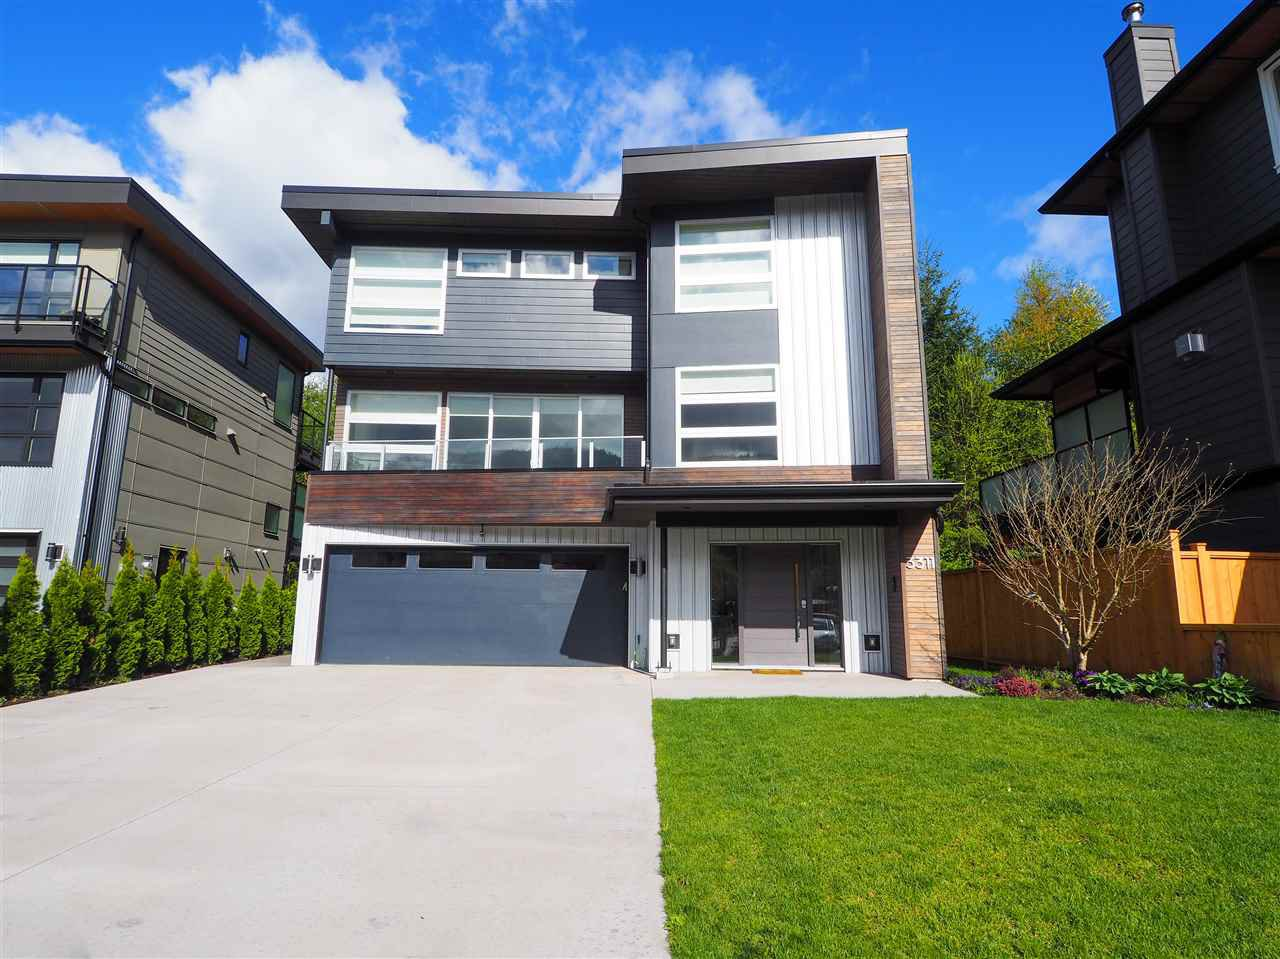 """Main Photo: 3311 ARISTOTLE Place in Squamish: University Highlands House for sale in """"UNIVERSITY MEADOWS"""" : MLS®# R2528277"""